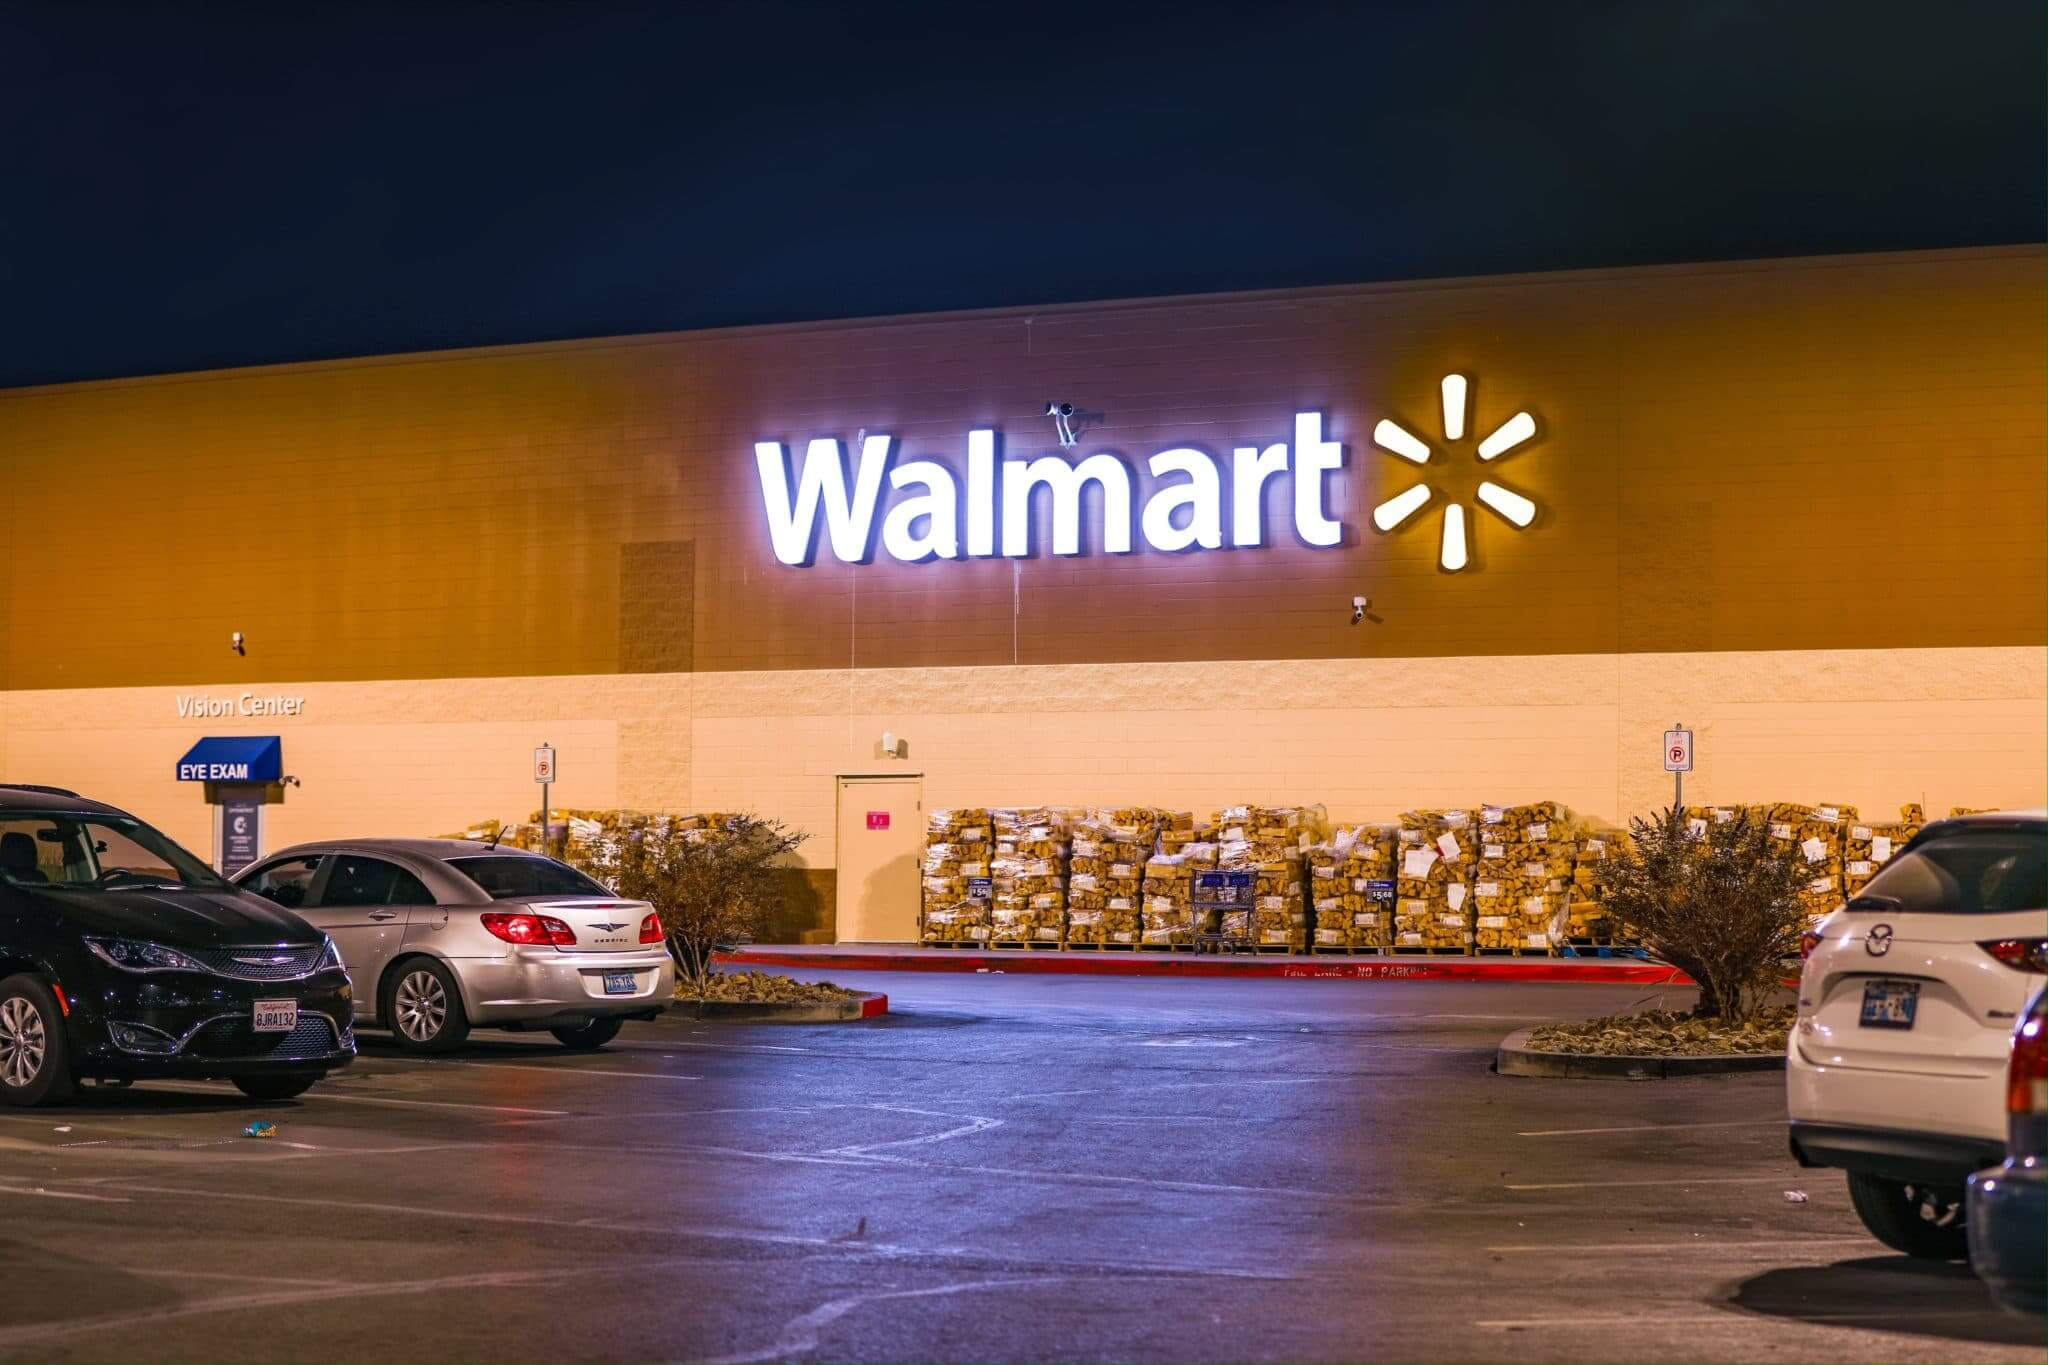 Find a Walmart That Allows Overnight Parking with RV Trip Wizard